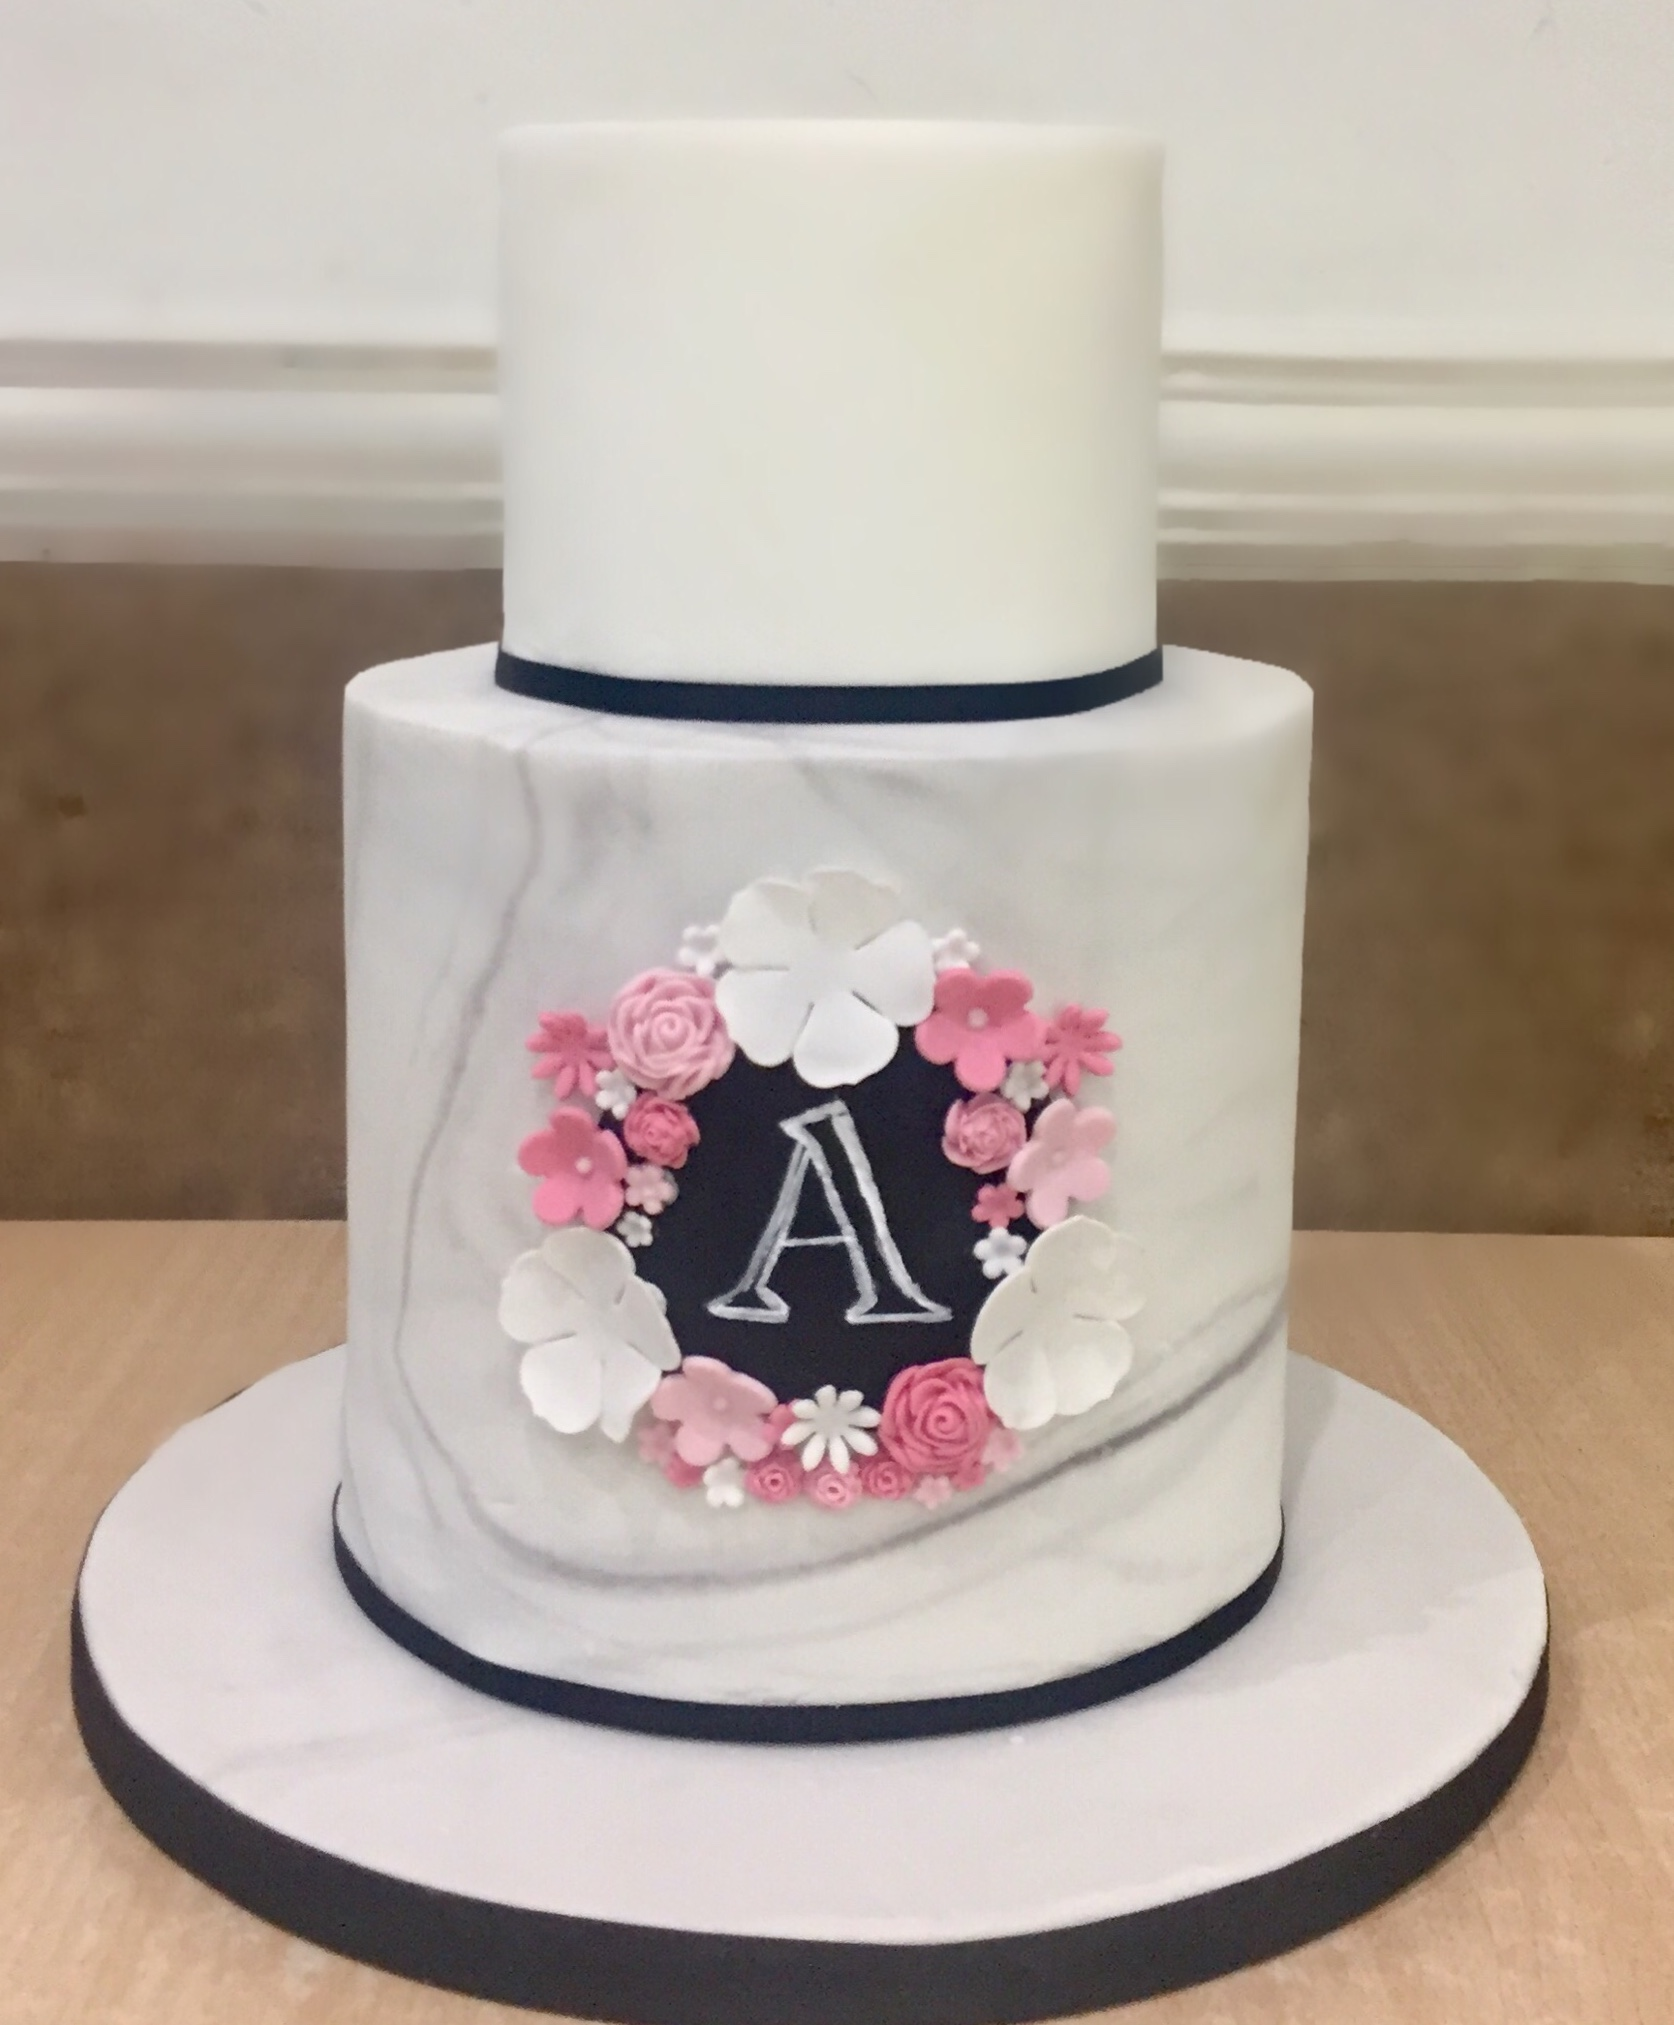 Wedding Cakes | Arif Bakery & Patisserie